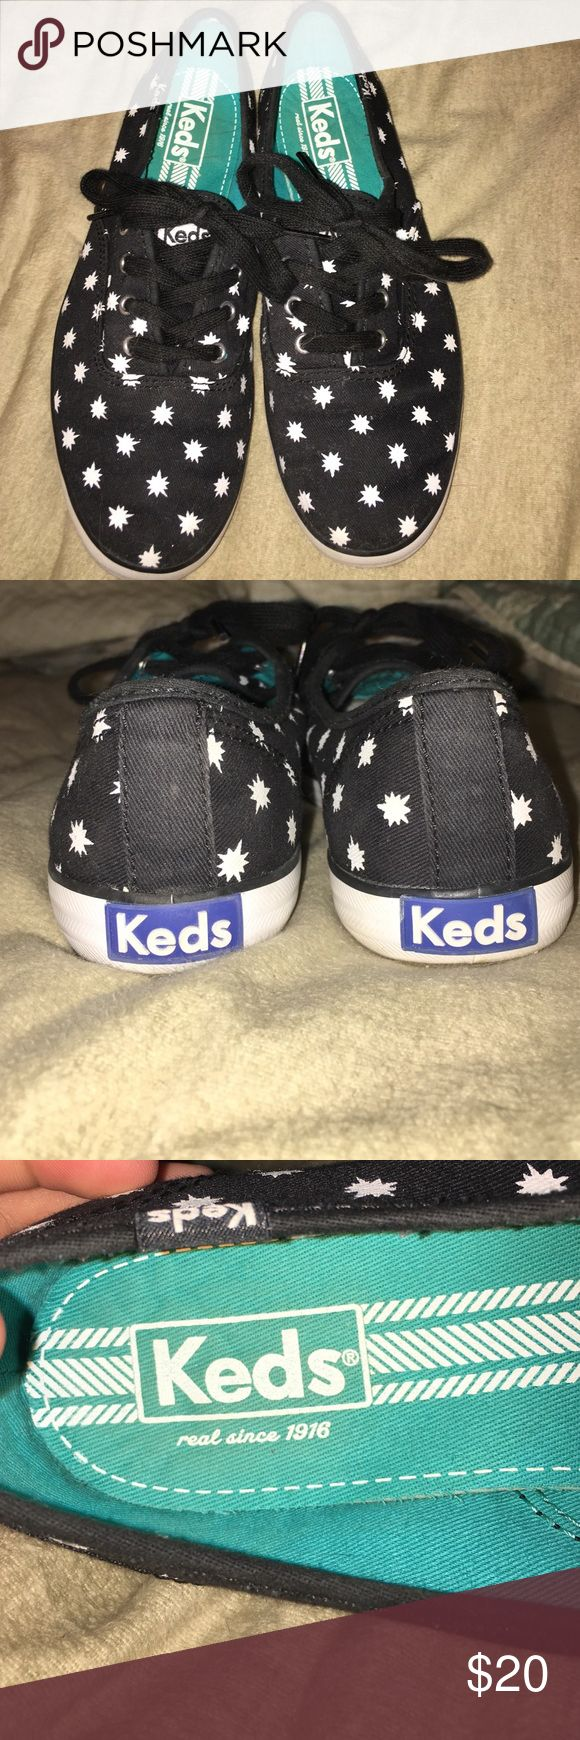 Keds sneaker Black keds sneakers with starlight design Keds  Shoes Sneakers